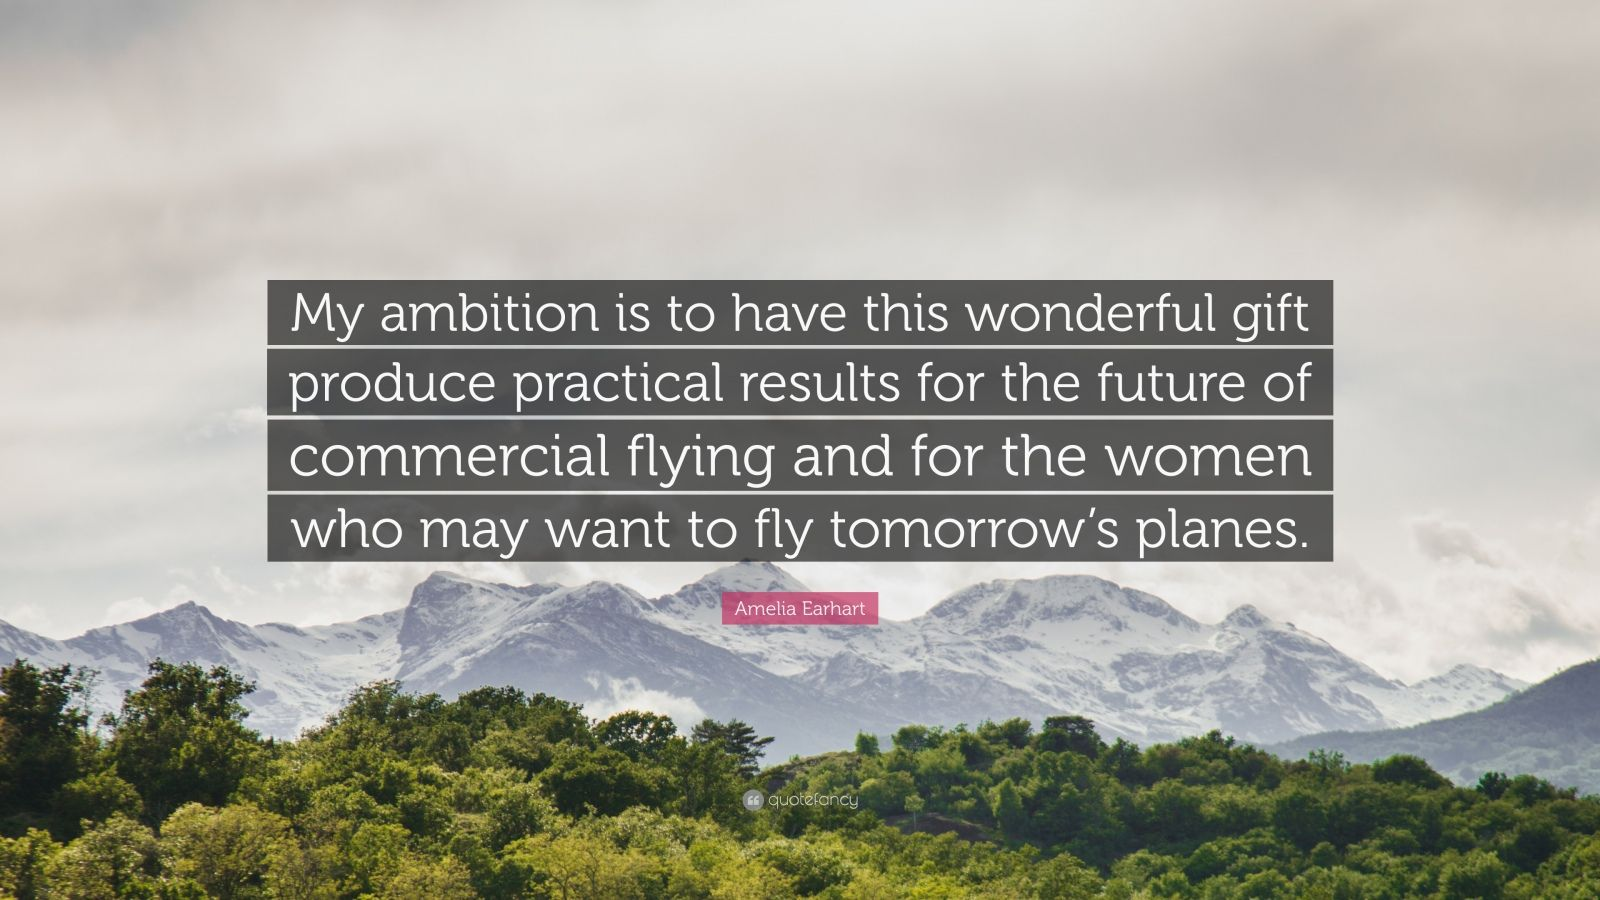 """Amelia Earhart Quote: """"My ambition is to have this wonderful gift produce practical results for the future of commercial flying and for the women who may want to fly tomorrow's planes."""""""